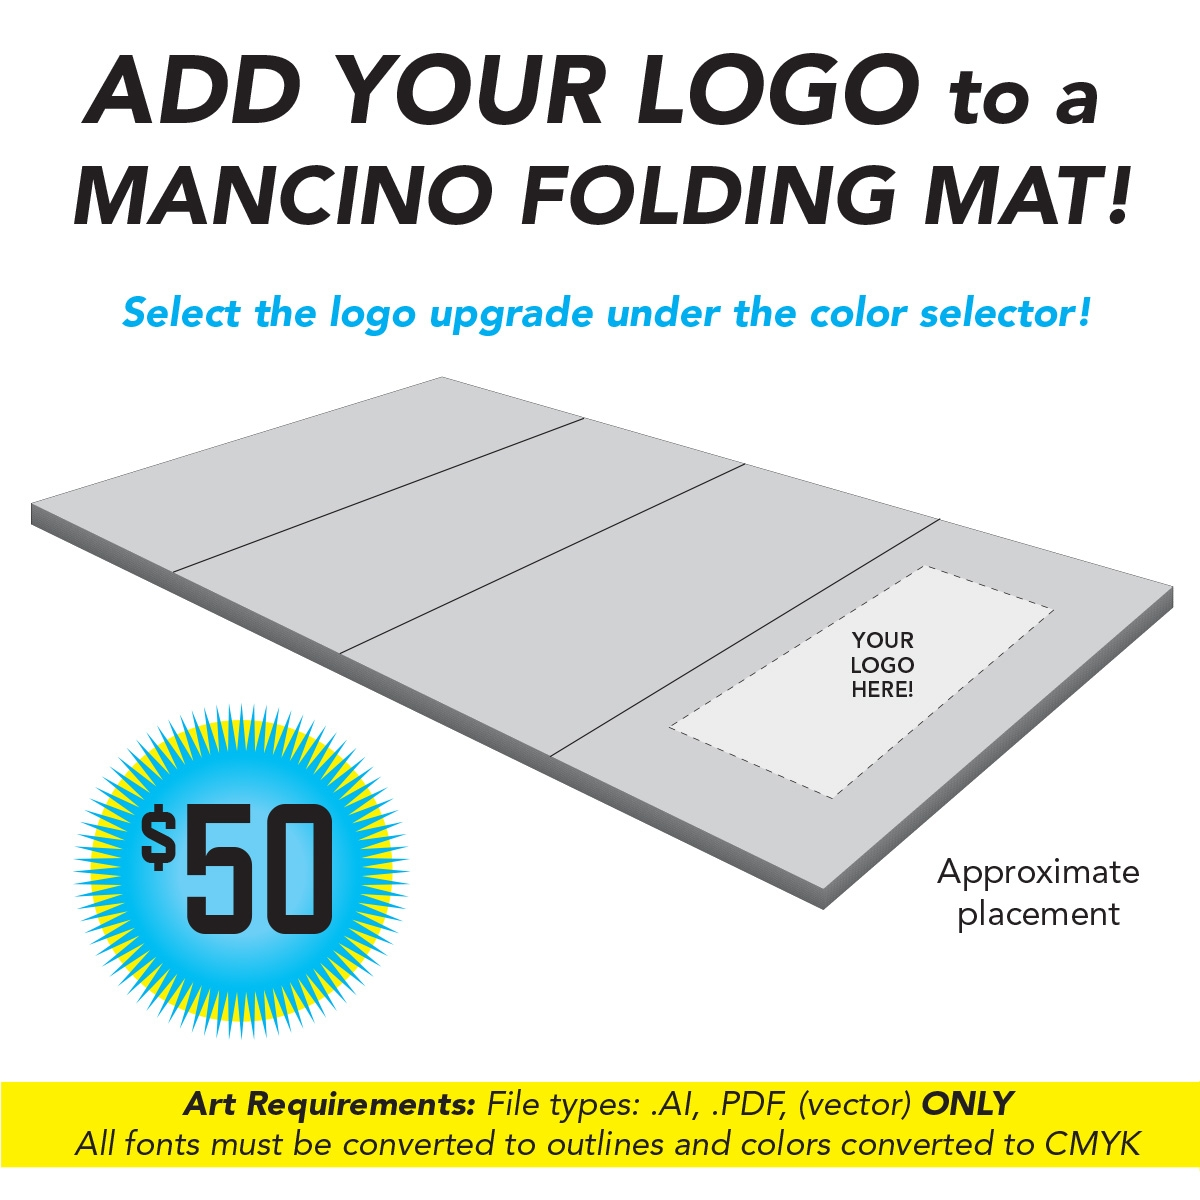 promote your gym brand with mancino by adding you gym logo to a mancino folding mat